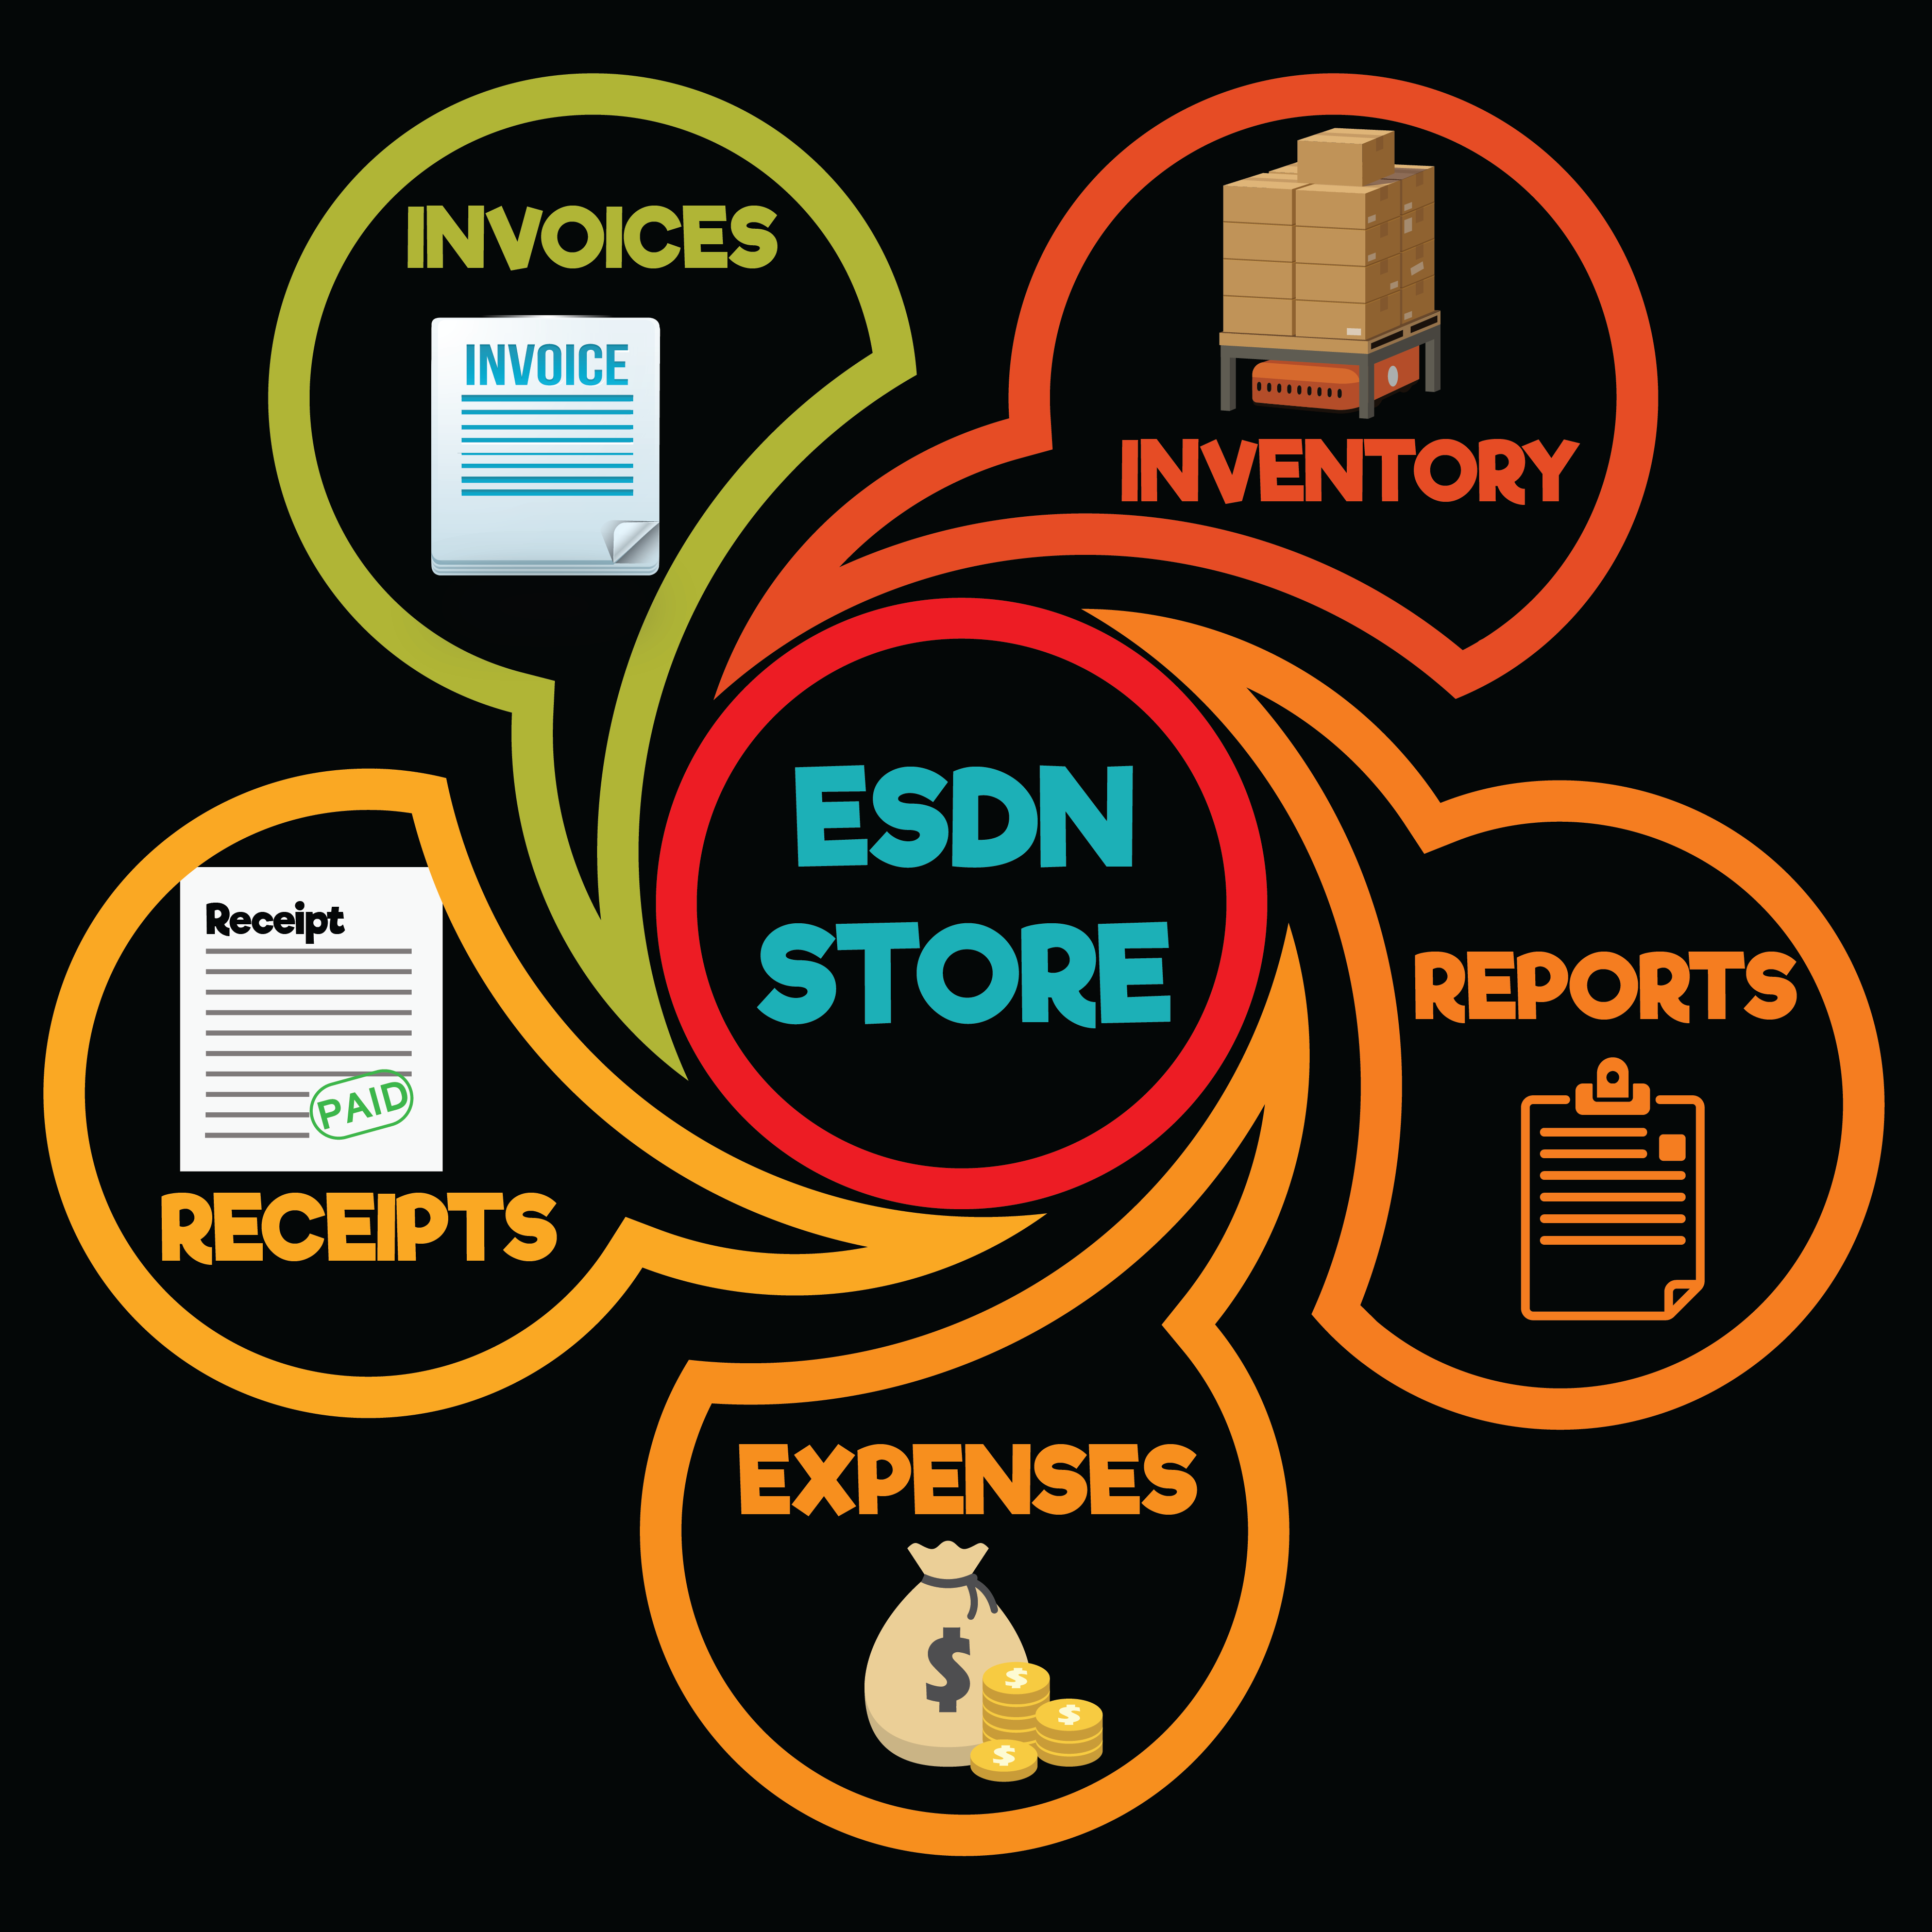 ESDN STORE